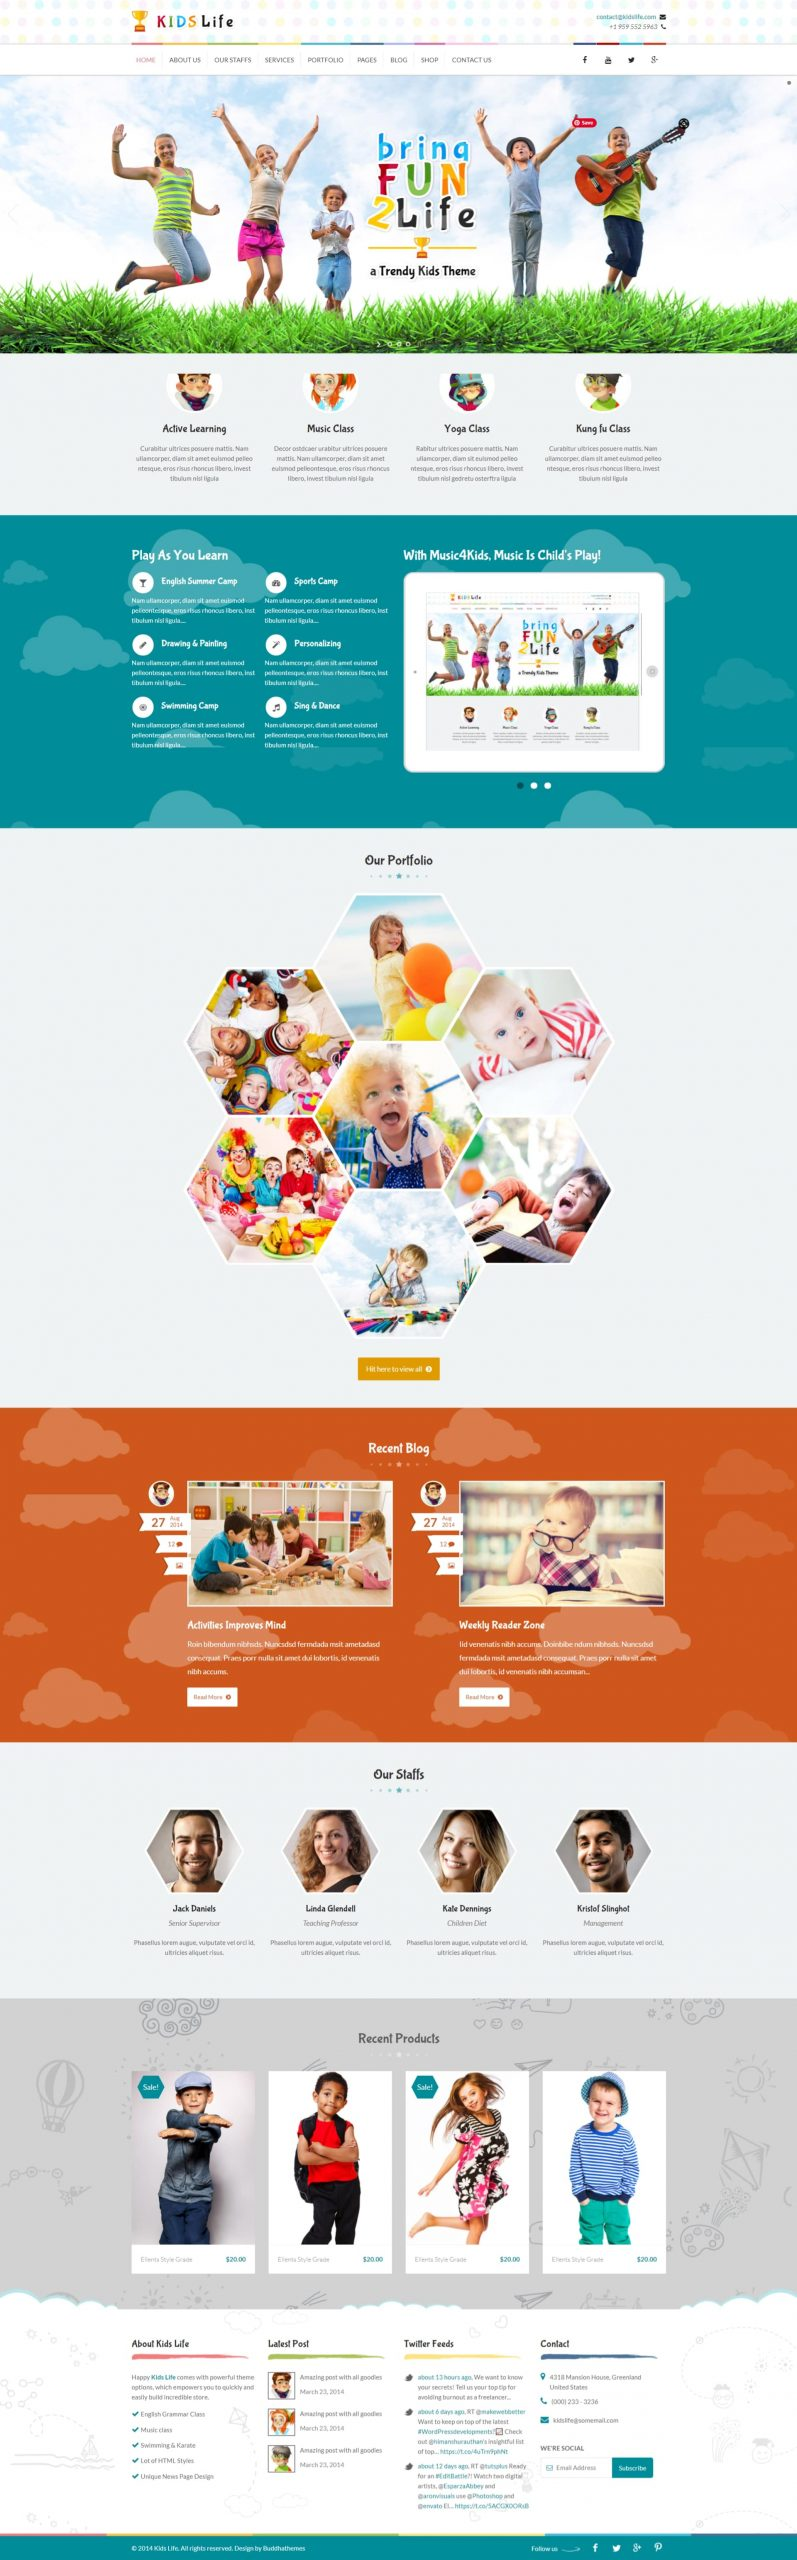 Kids Life - A Trendy and Fun Kids HTML5 Template With Amazing Animation and Parallax Effect